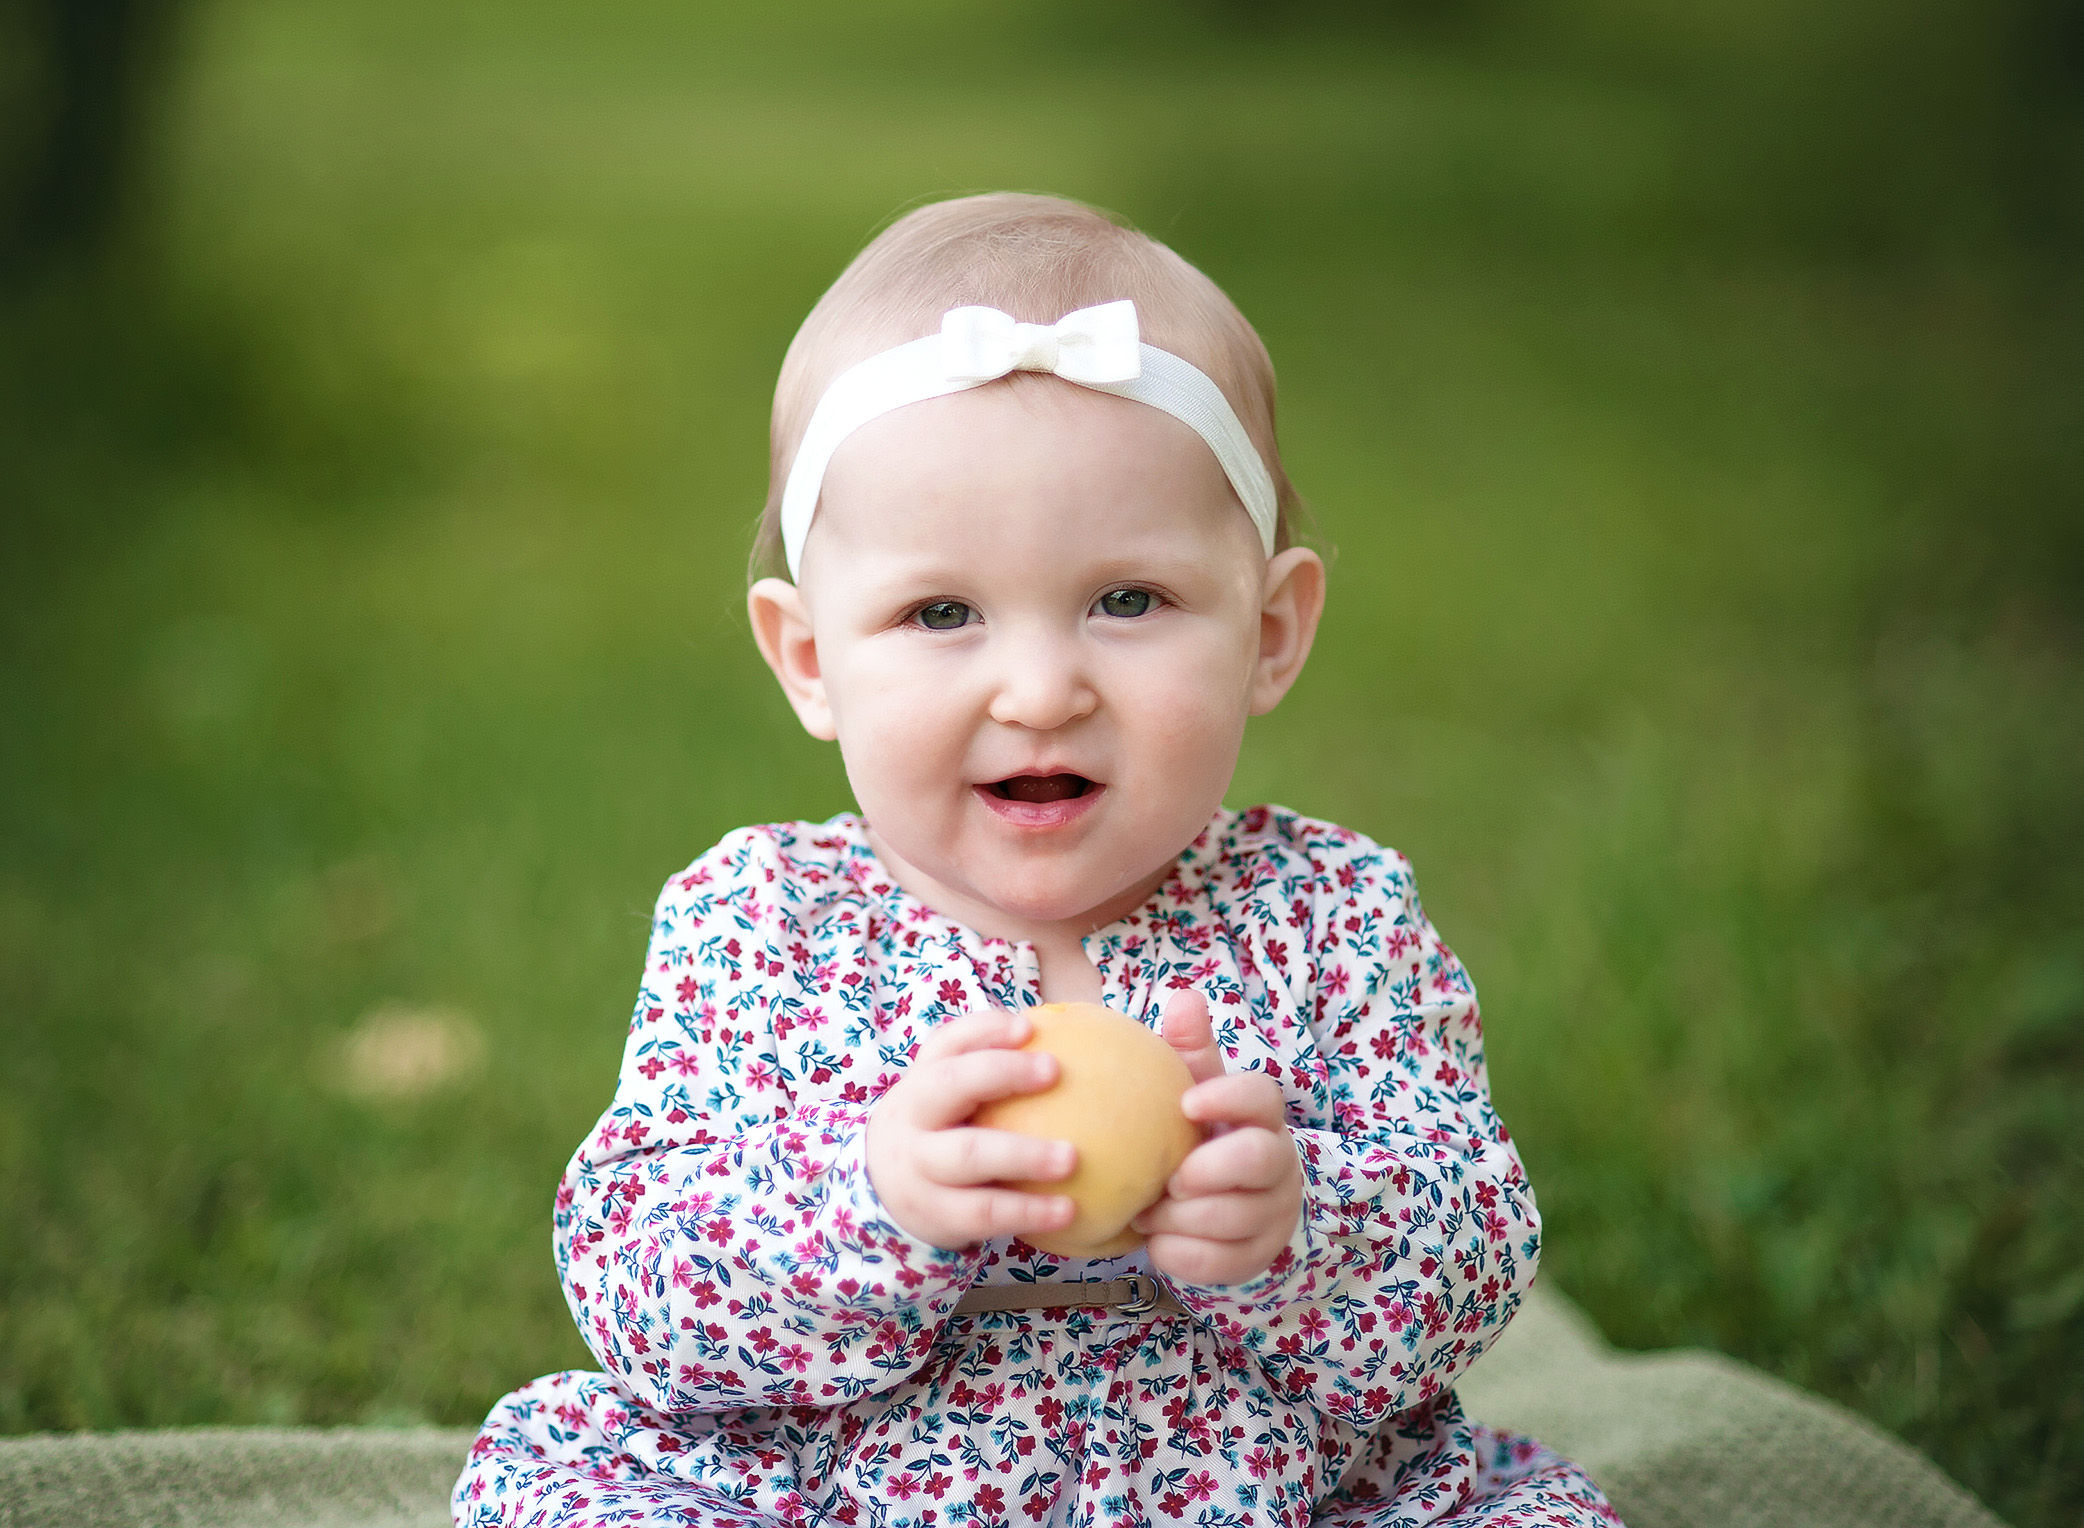 baby eating a peach outside